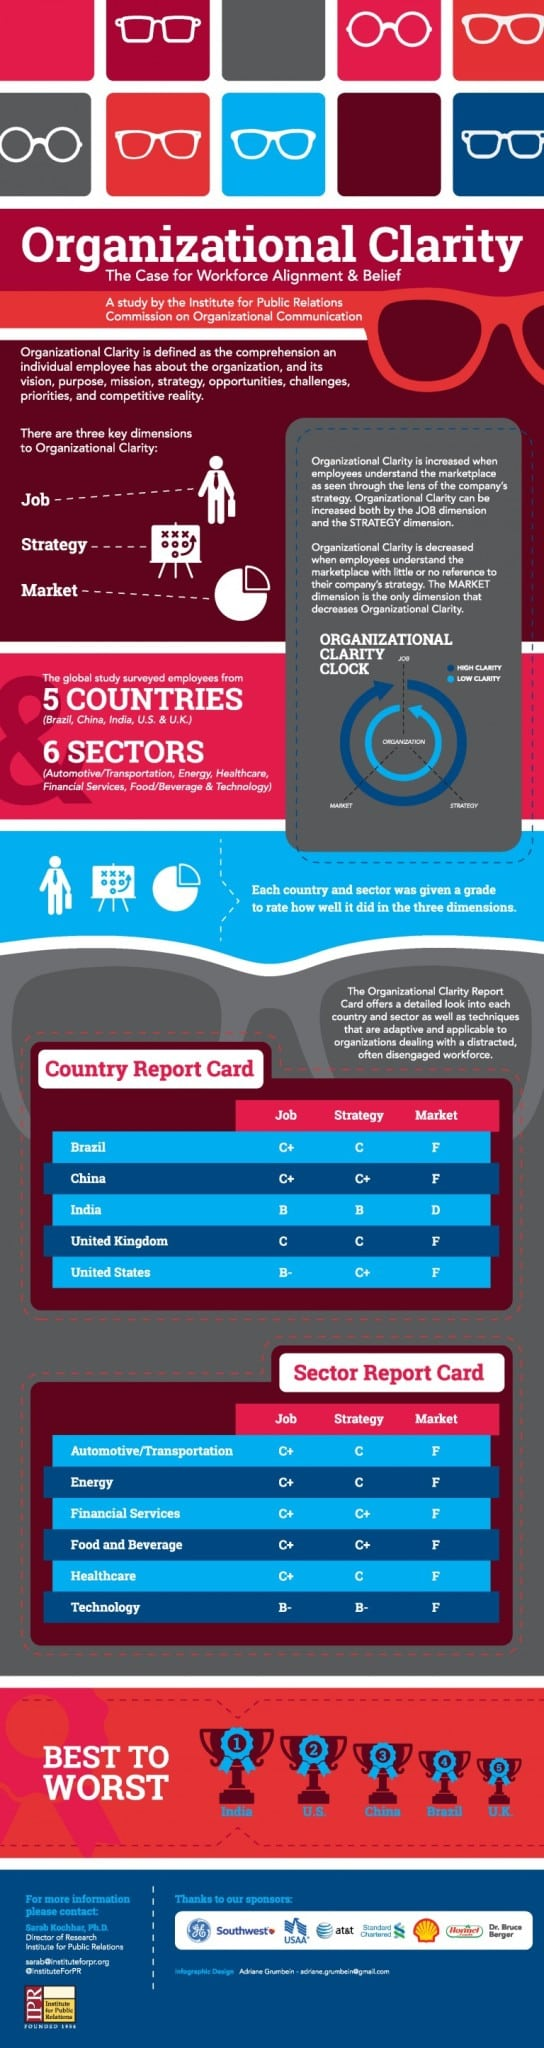 Organizational-Clarity-Infographic-05-06-16-Final-online-768x2893